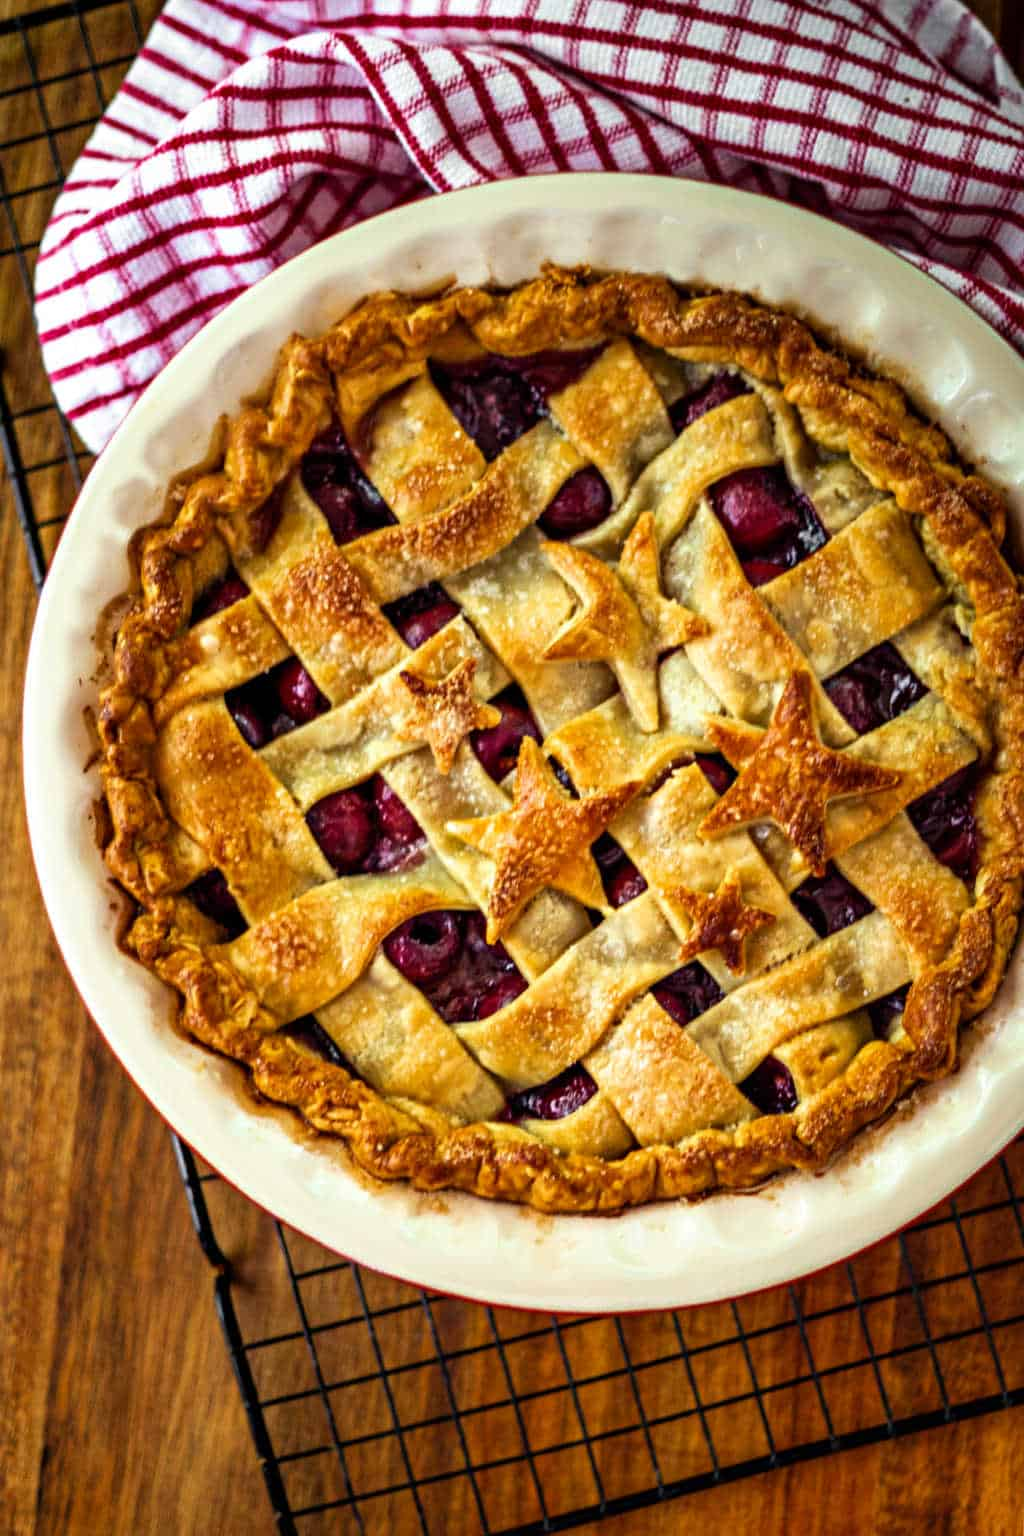 5-Star Cherry Pie with a lattice crust on a wire rack with a red and white kitchen towel